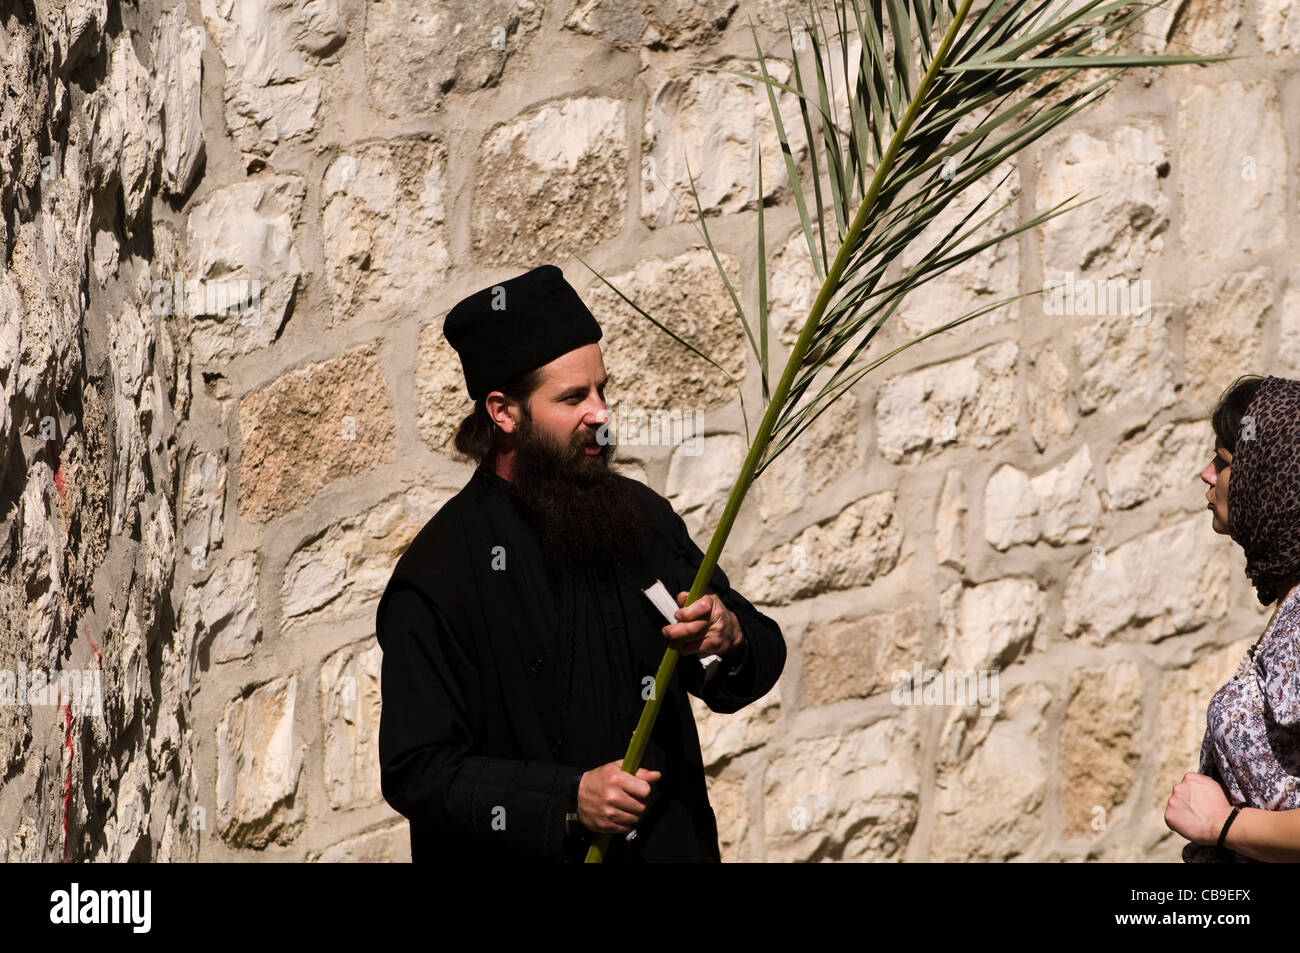 A Russian Orthodox priest holding a palm branch on Palm Sunday day. - Stock Image